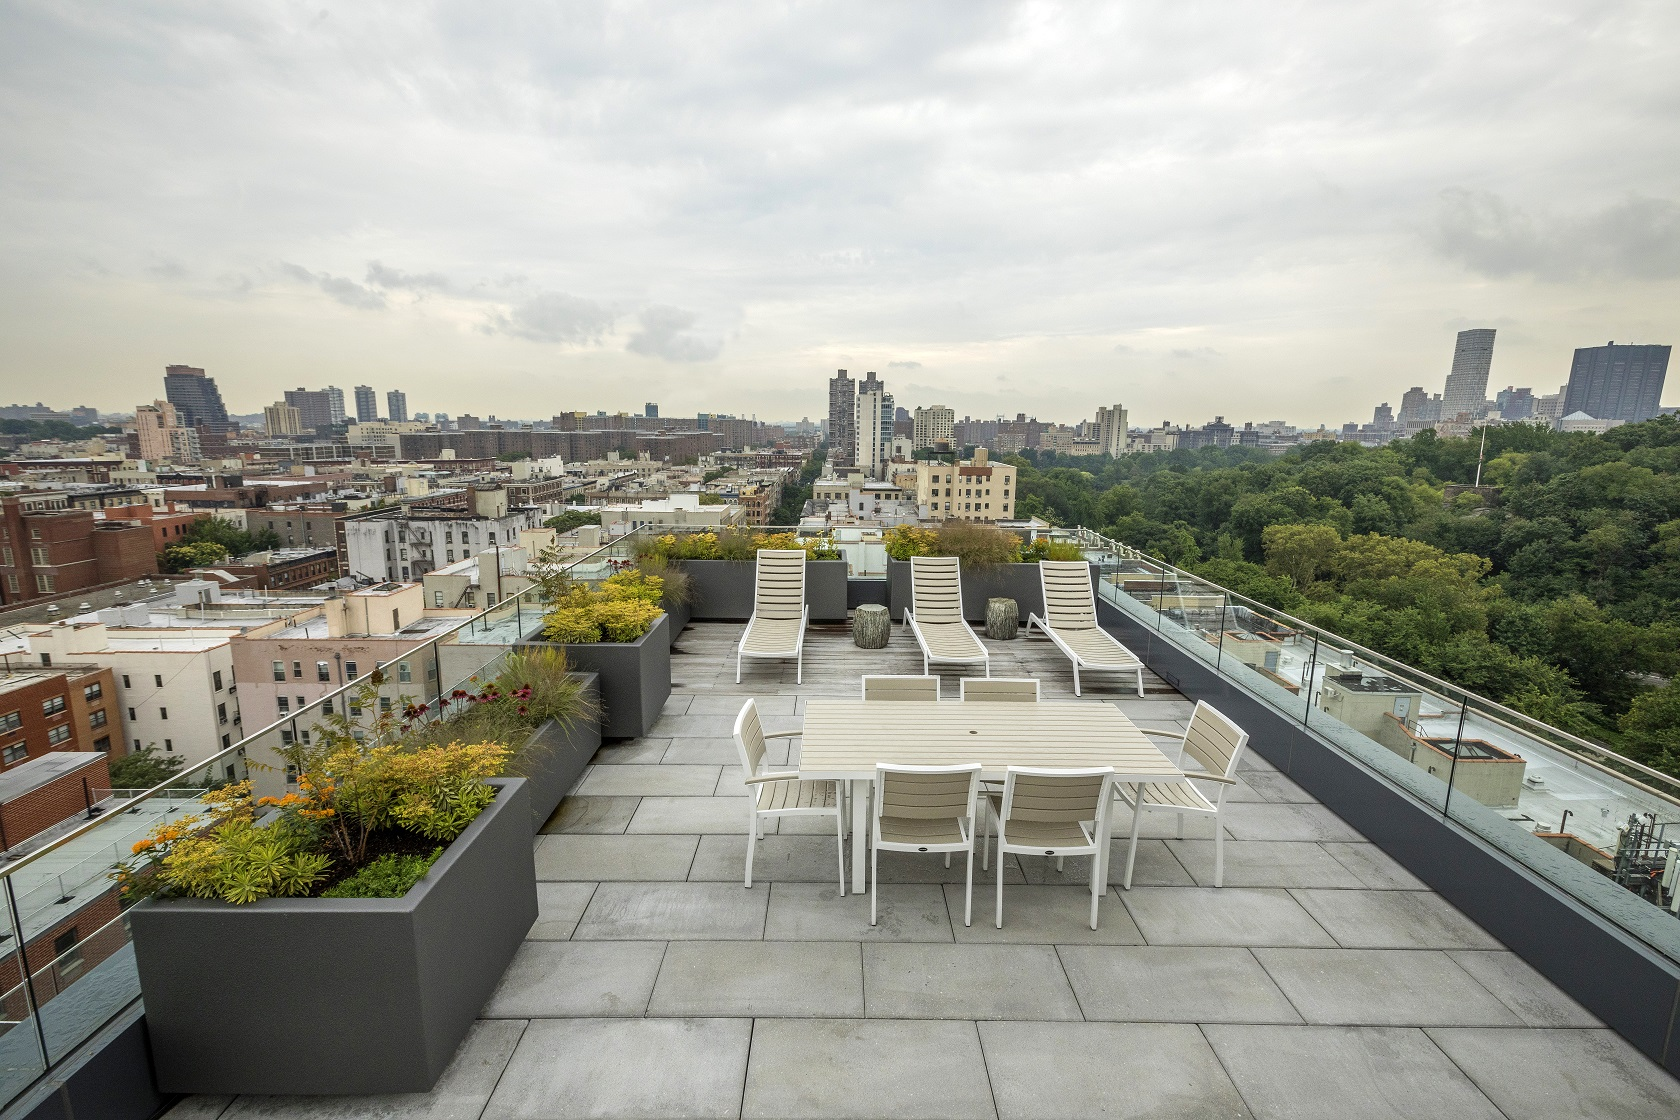 Breathtaking Central Park views are complemented by expertly installed landscape elements, creating a beautiful amenity for the